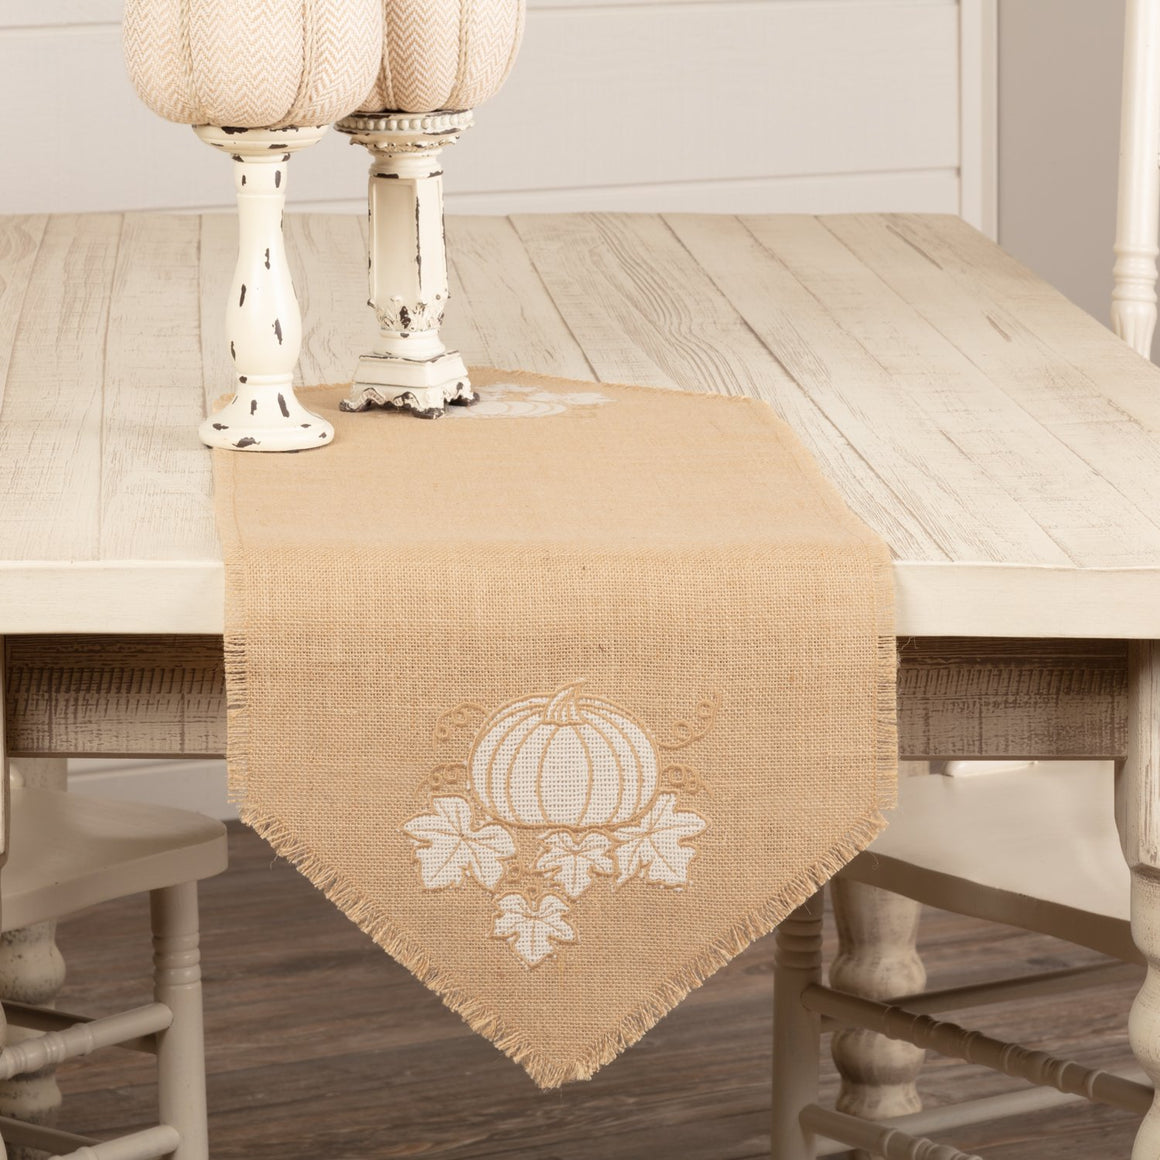 Jute Burlap Natural Harvest Garden Runner